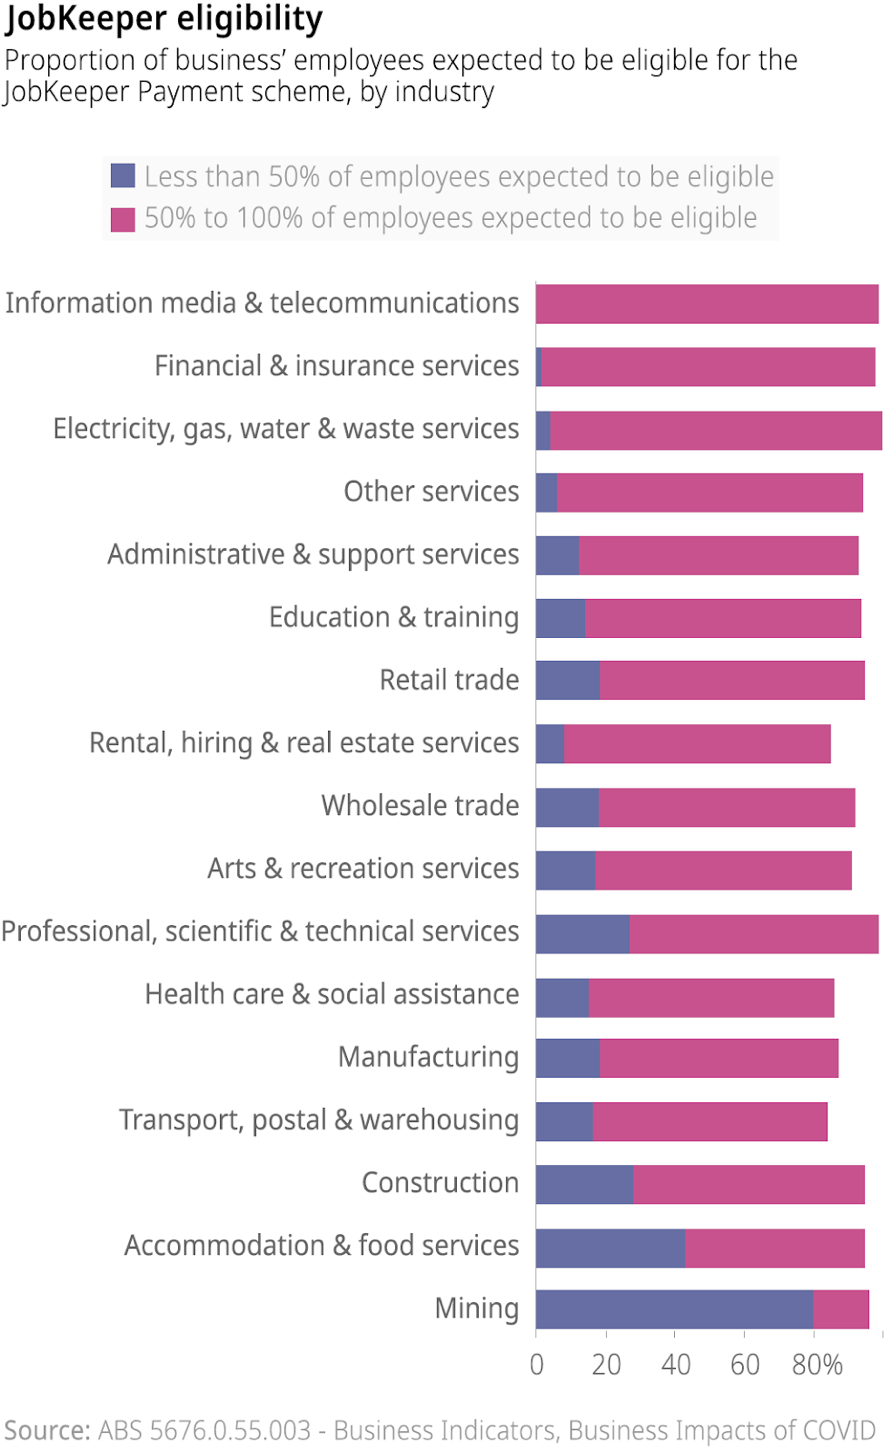 The proportion of employees expected to be eligible for JobKeeper payments by industry sector, as at April 2020.